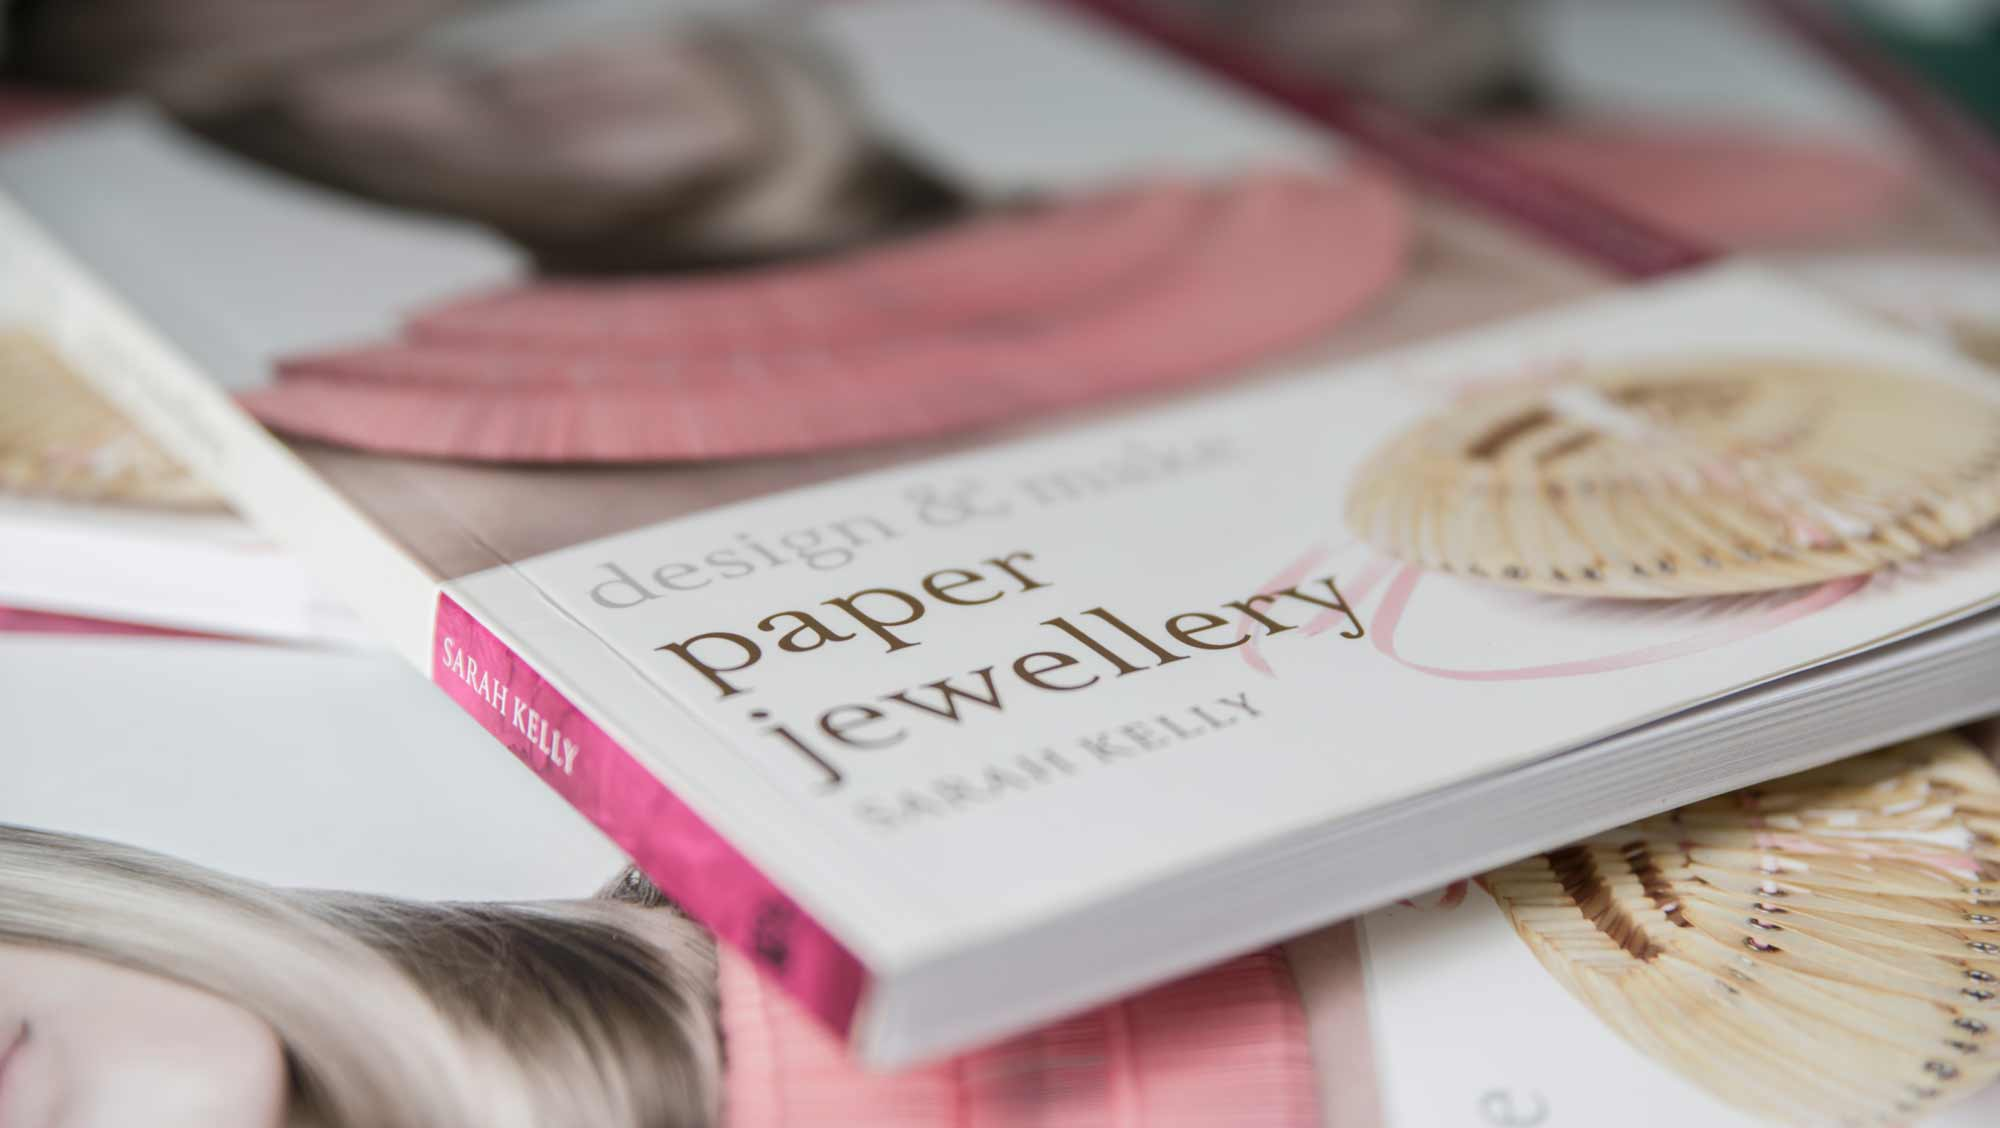 Design And Make Paper Jewellery Book By Sarah Kelly